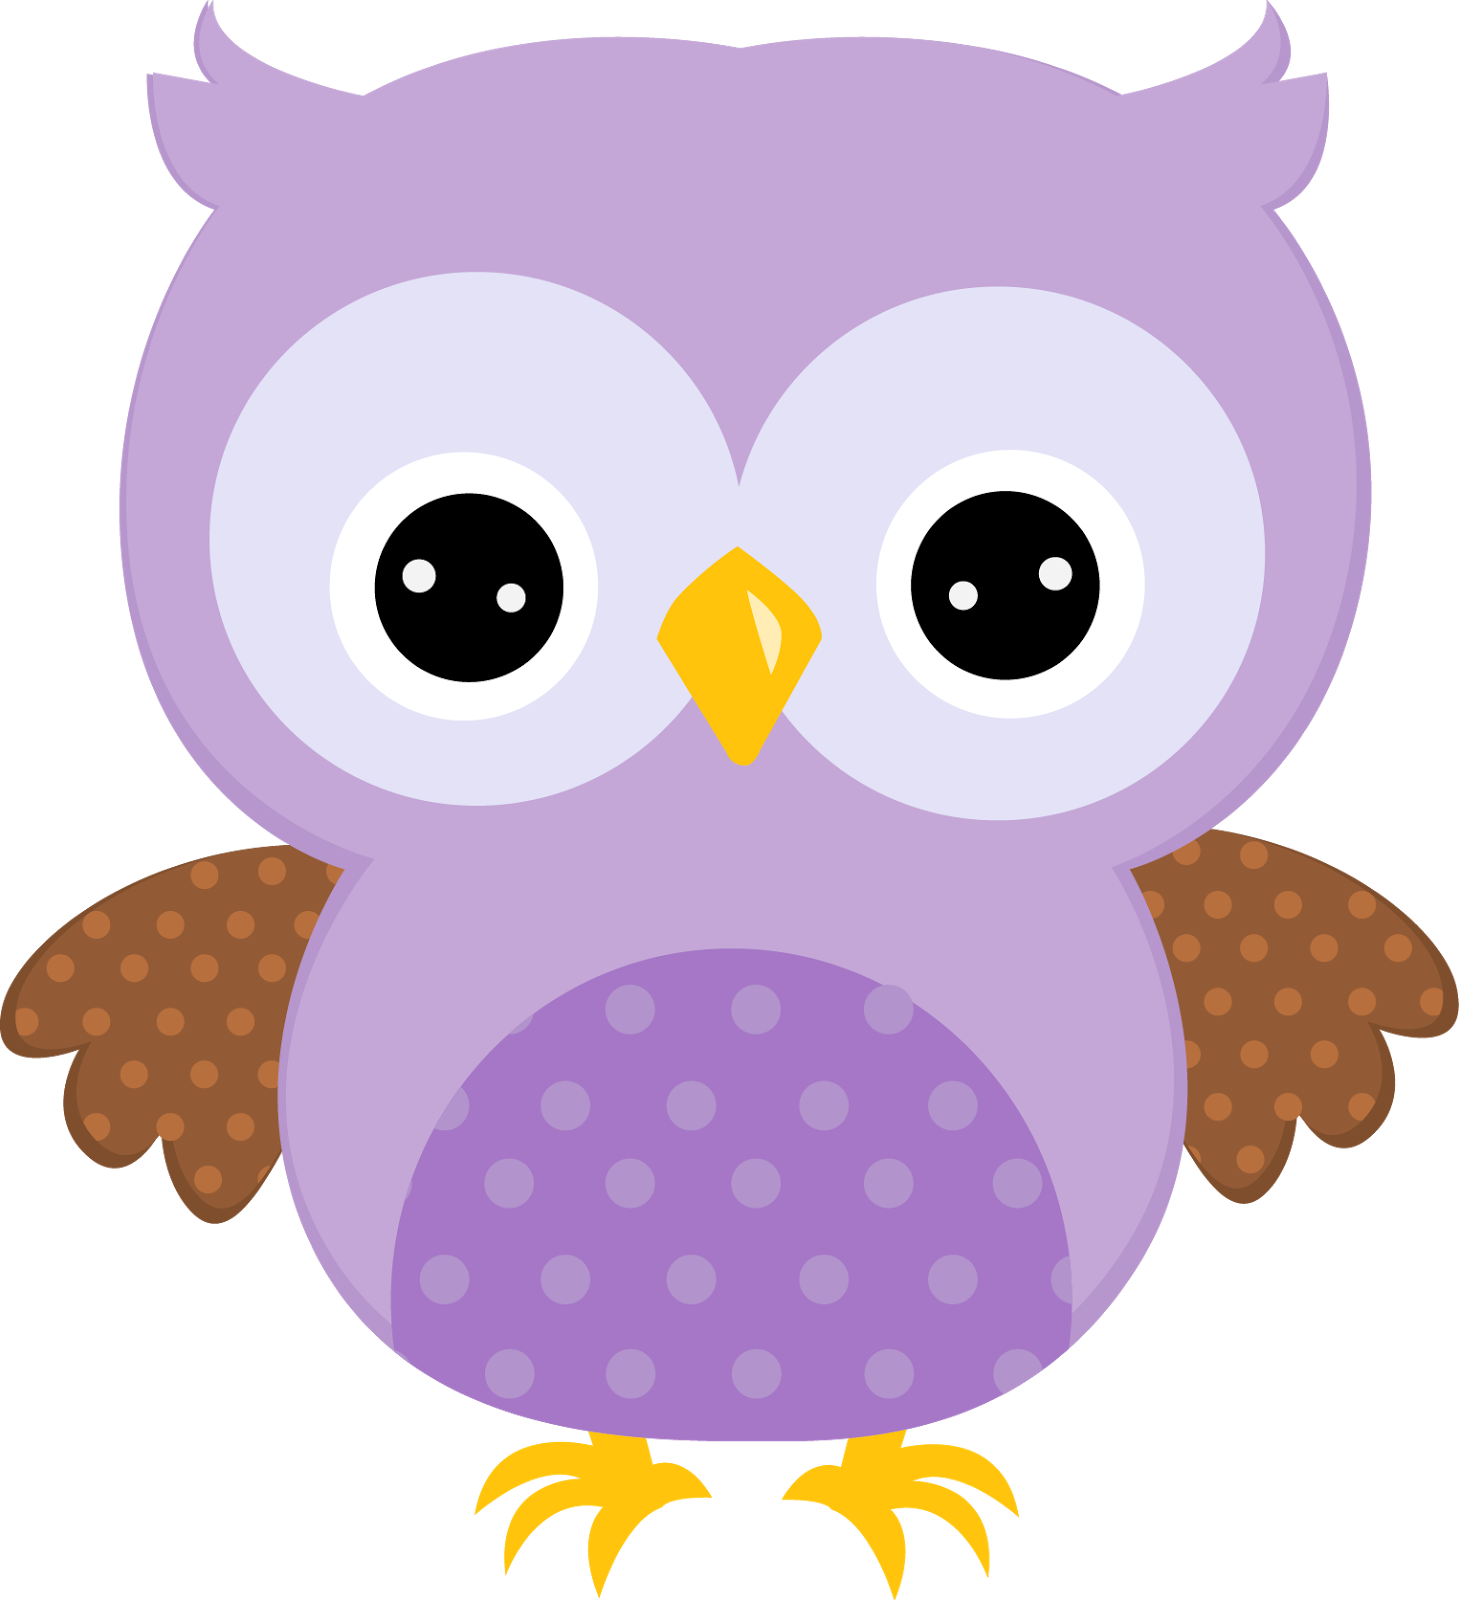 quinceanera owls in colors clipart oh my quinceaneras clipart of owls dressed up super heroes clipart of owls dressed as the paw patrol